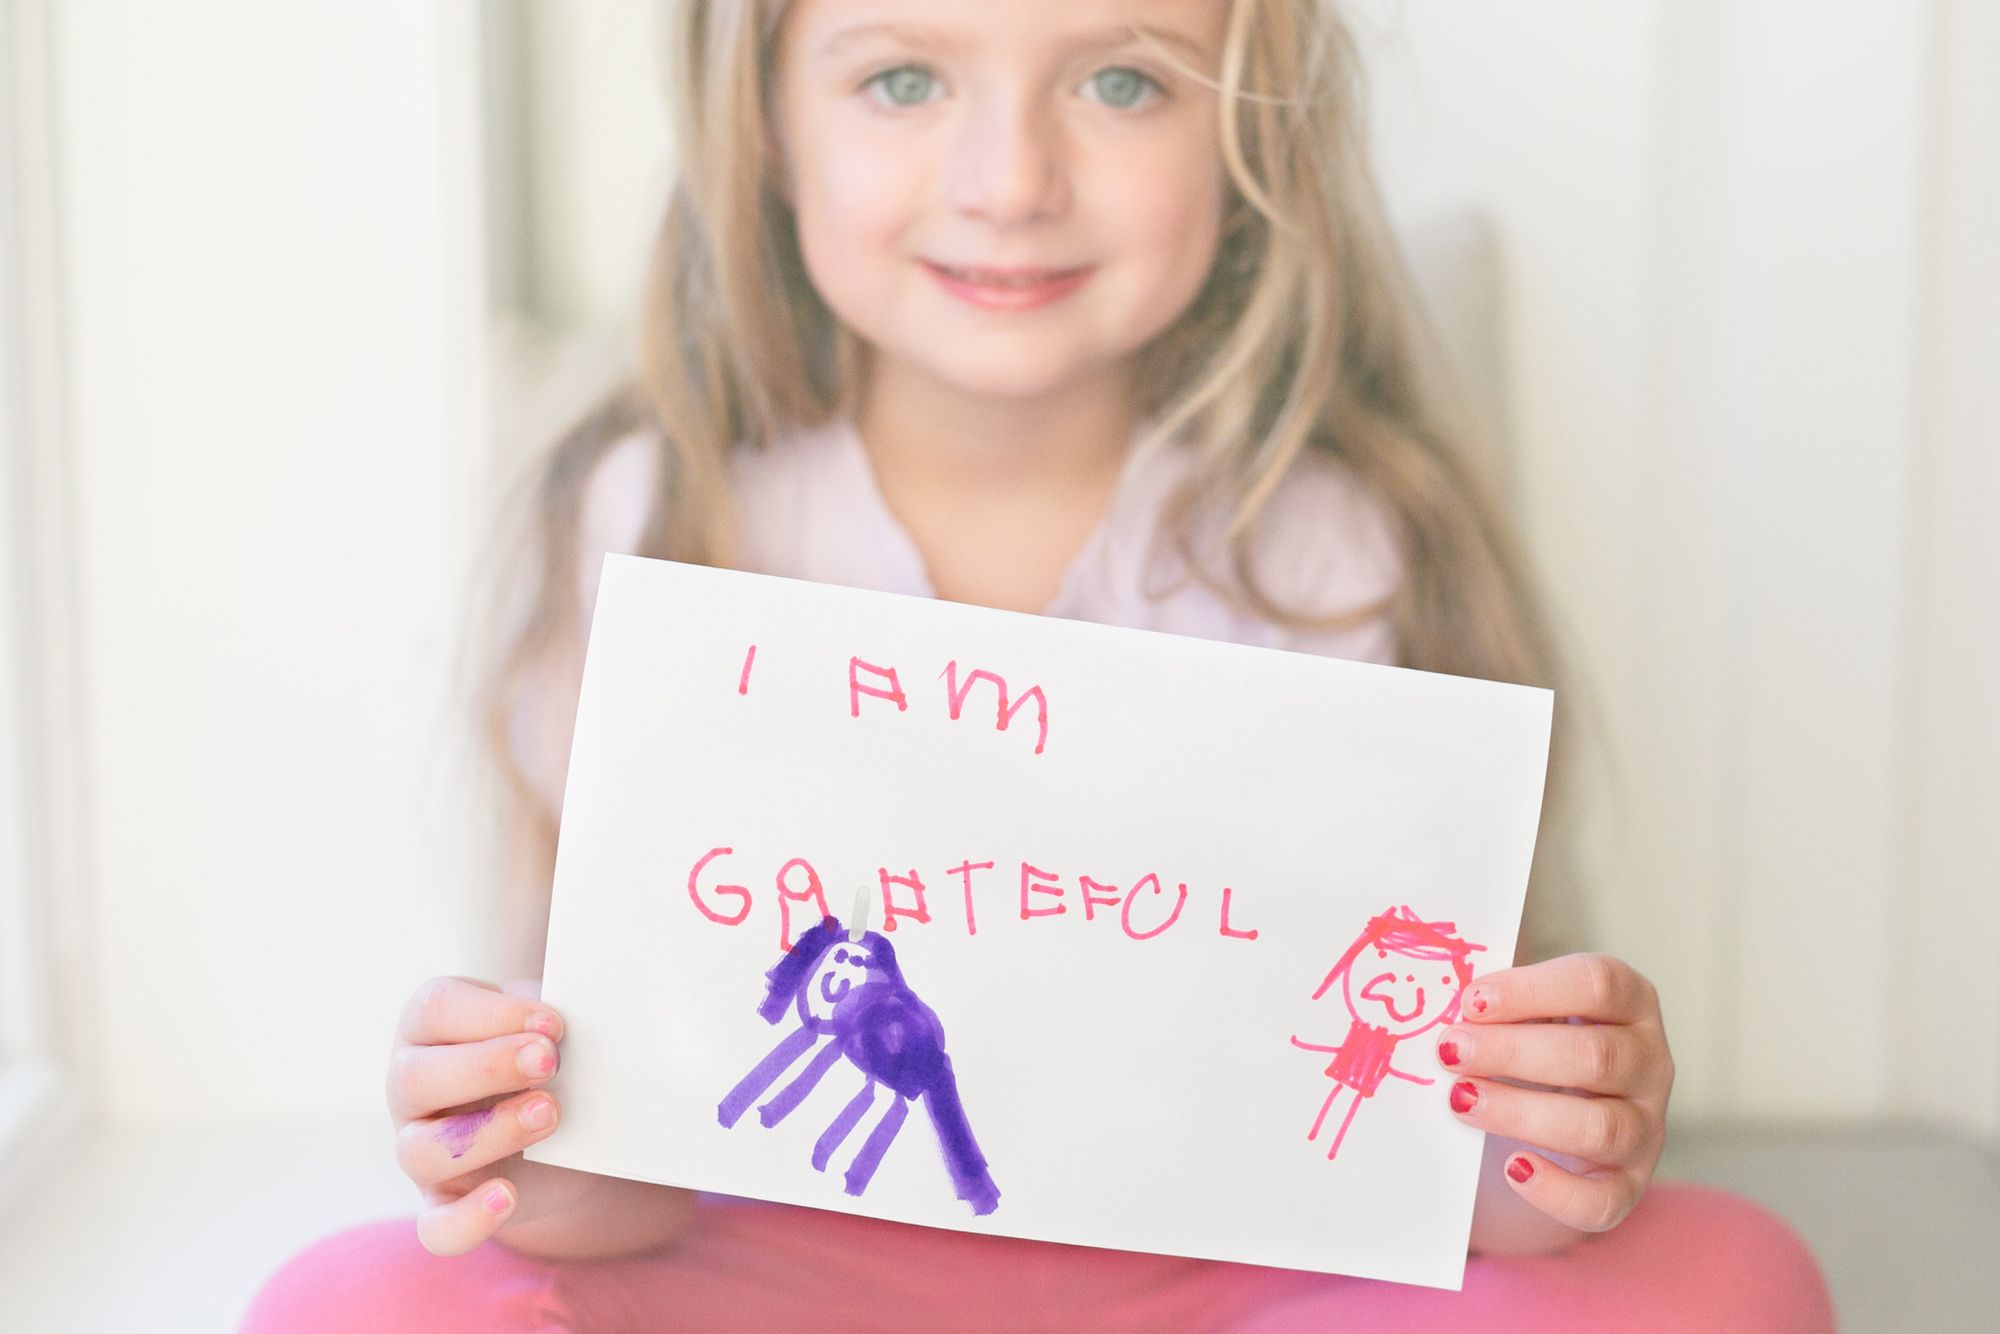 """A young girl with blond hair and big blue eyes, the author's daughter, is holding up a hand-made thank you card with the words """"I AM GRATEFUL"""" written in pink marker above a drawing of a purple unicorn and a smiling person."""